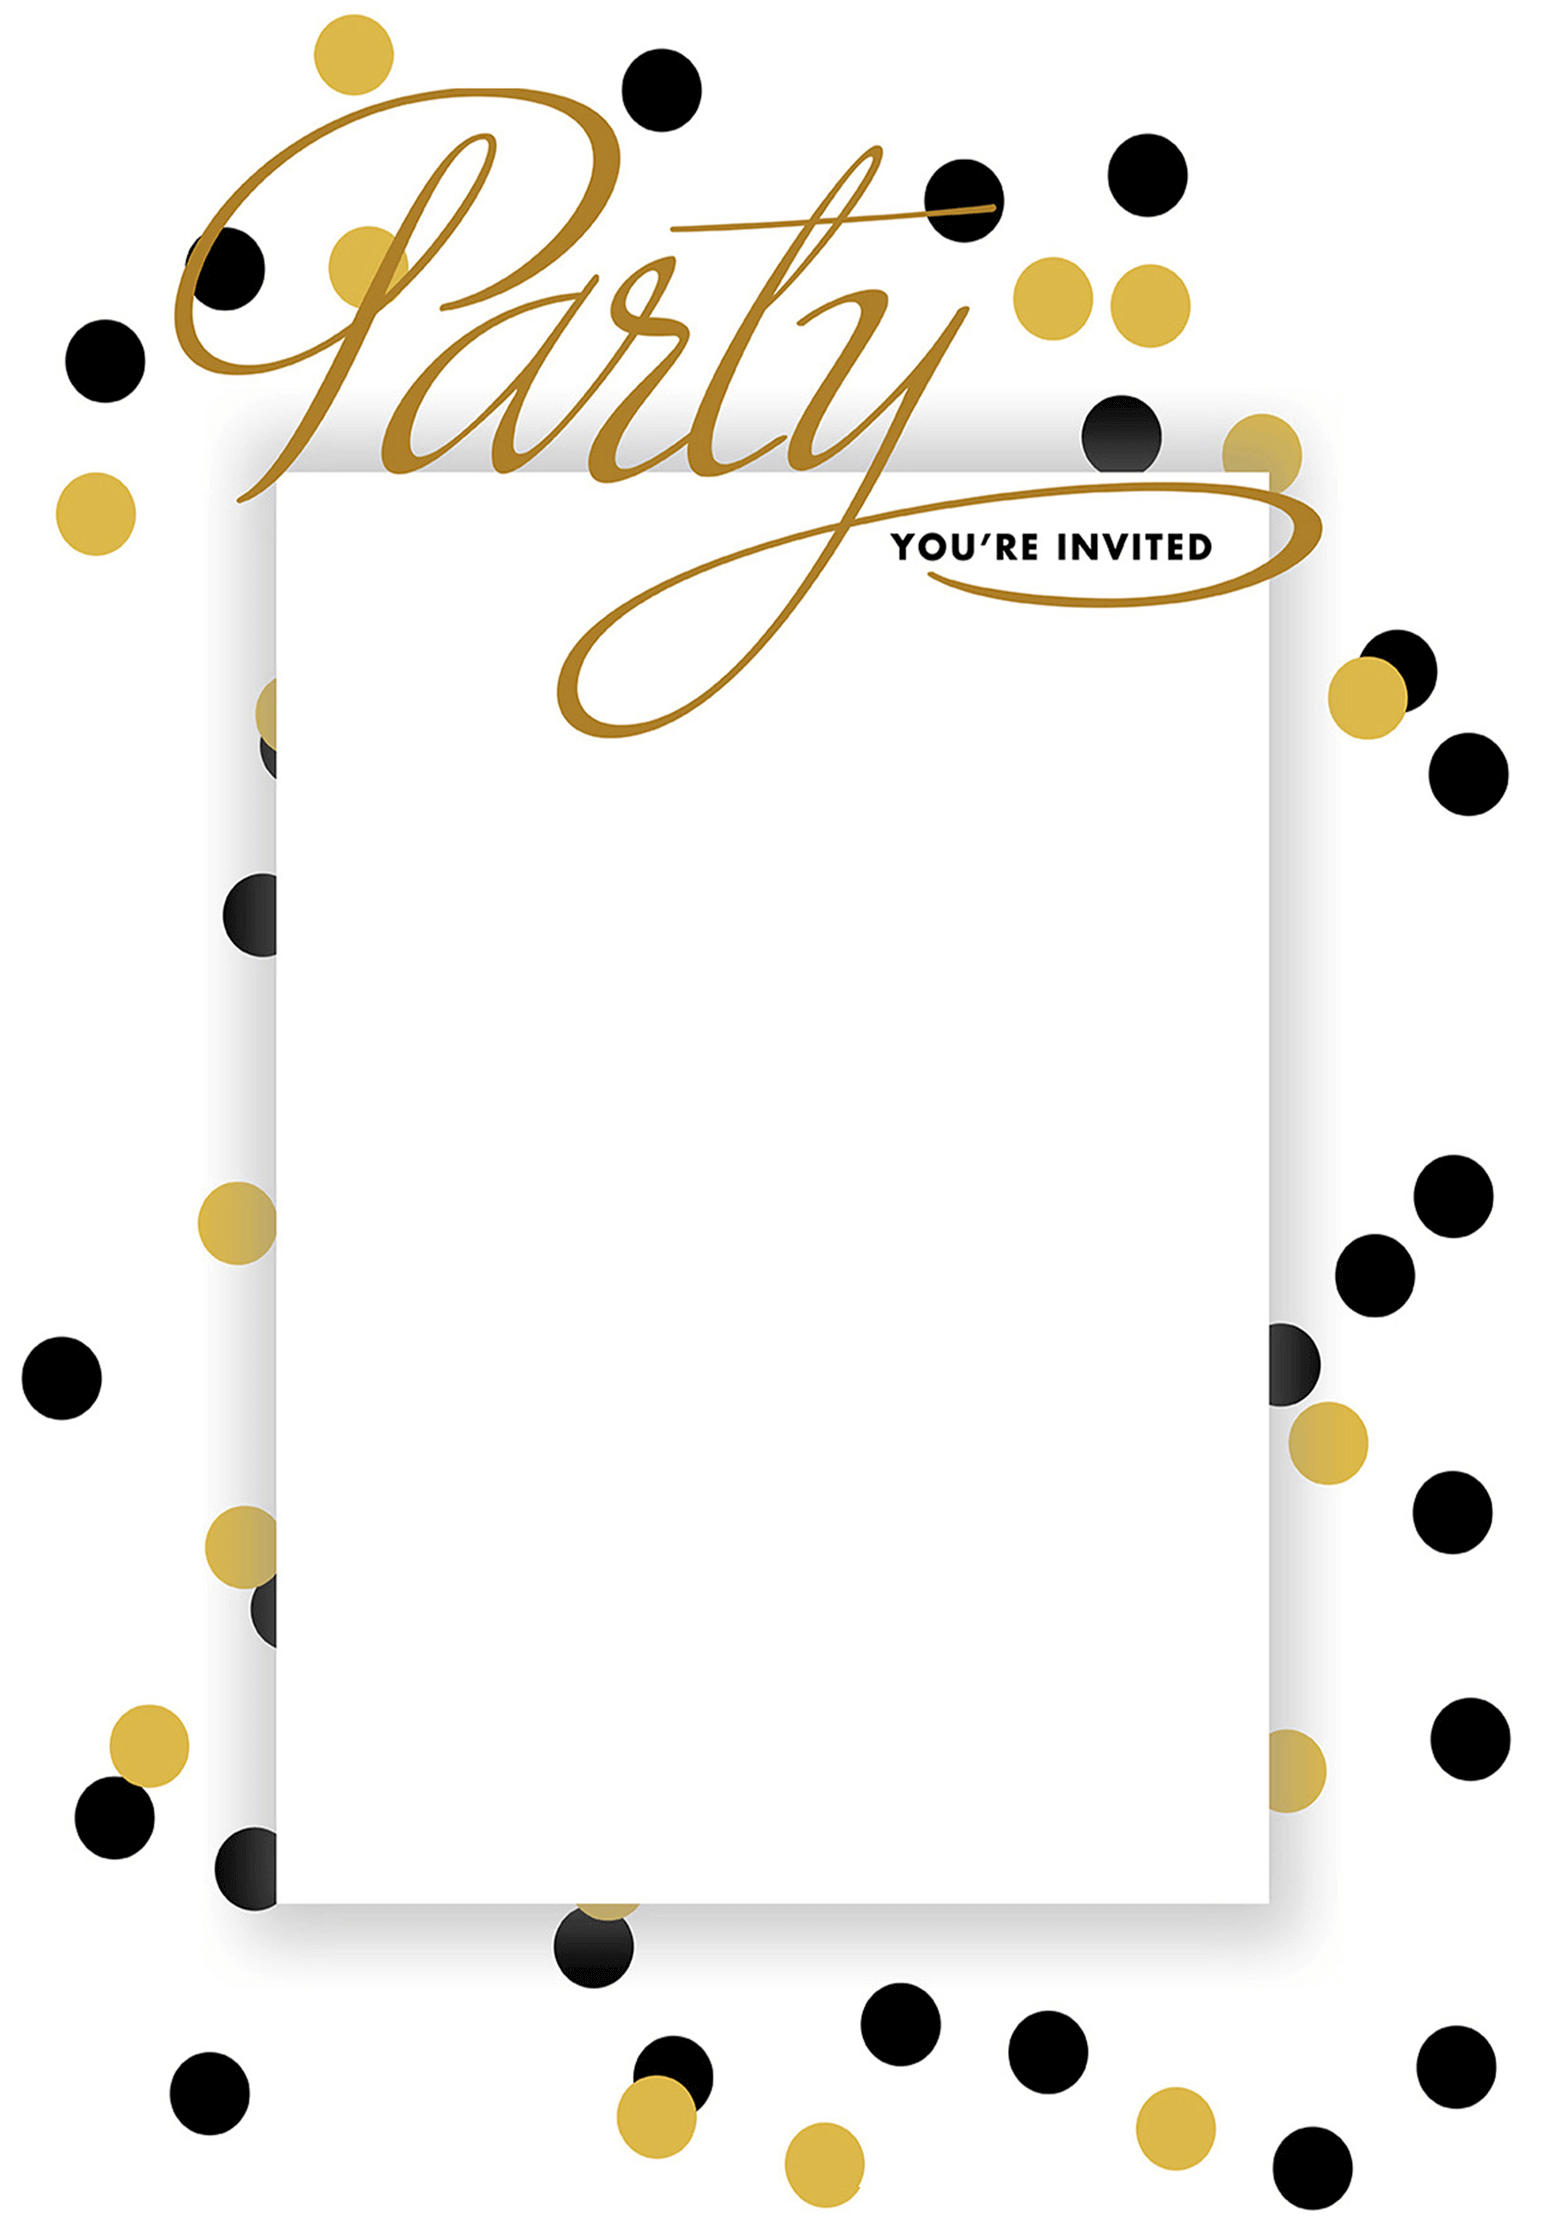 House Party Dots - House Party Invitation Template (Free